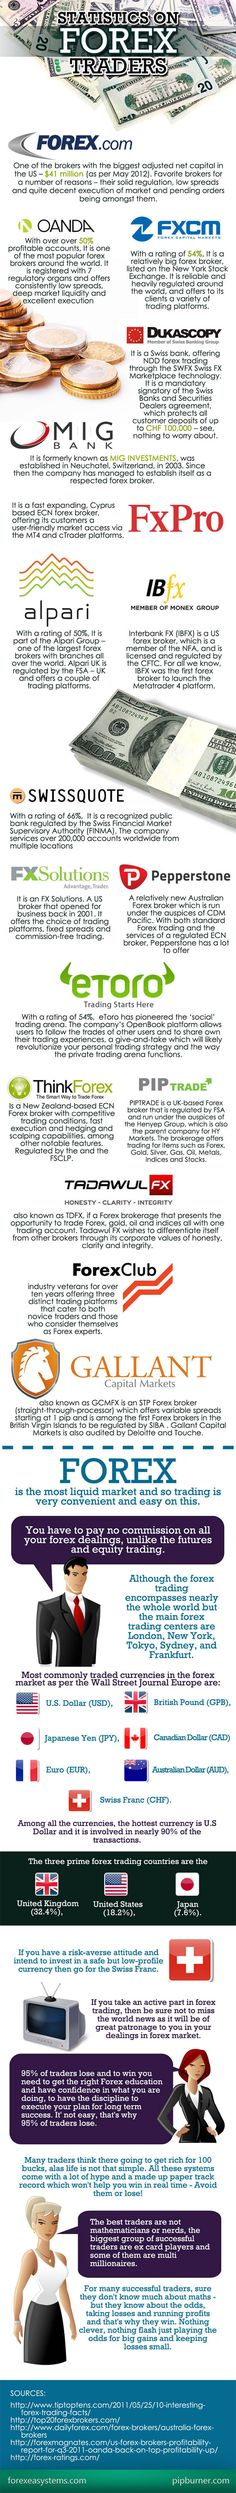 How many forex traders worldwide